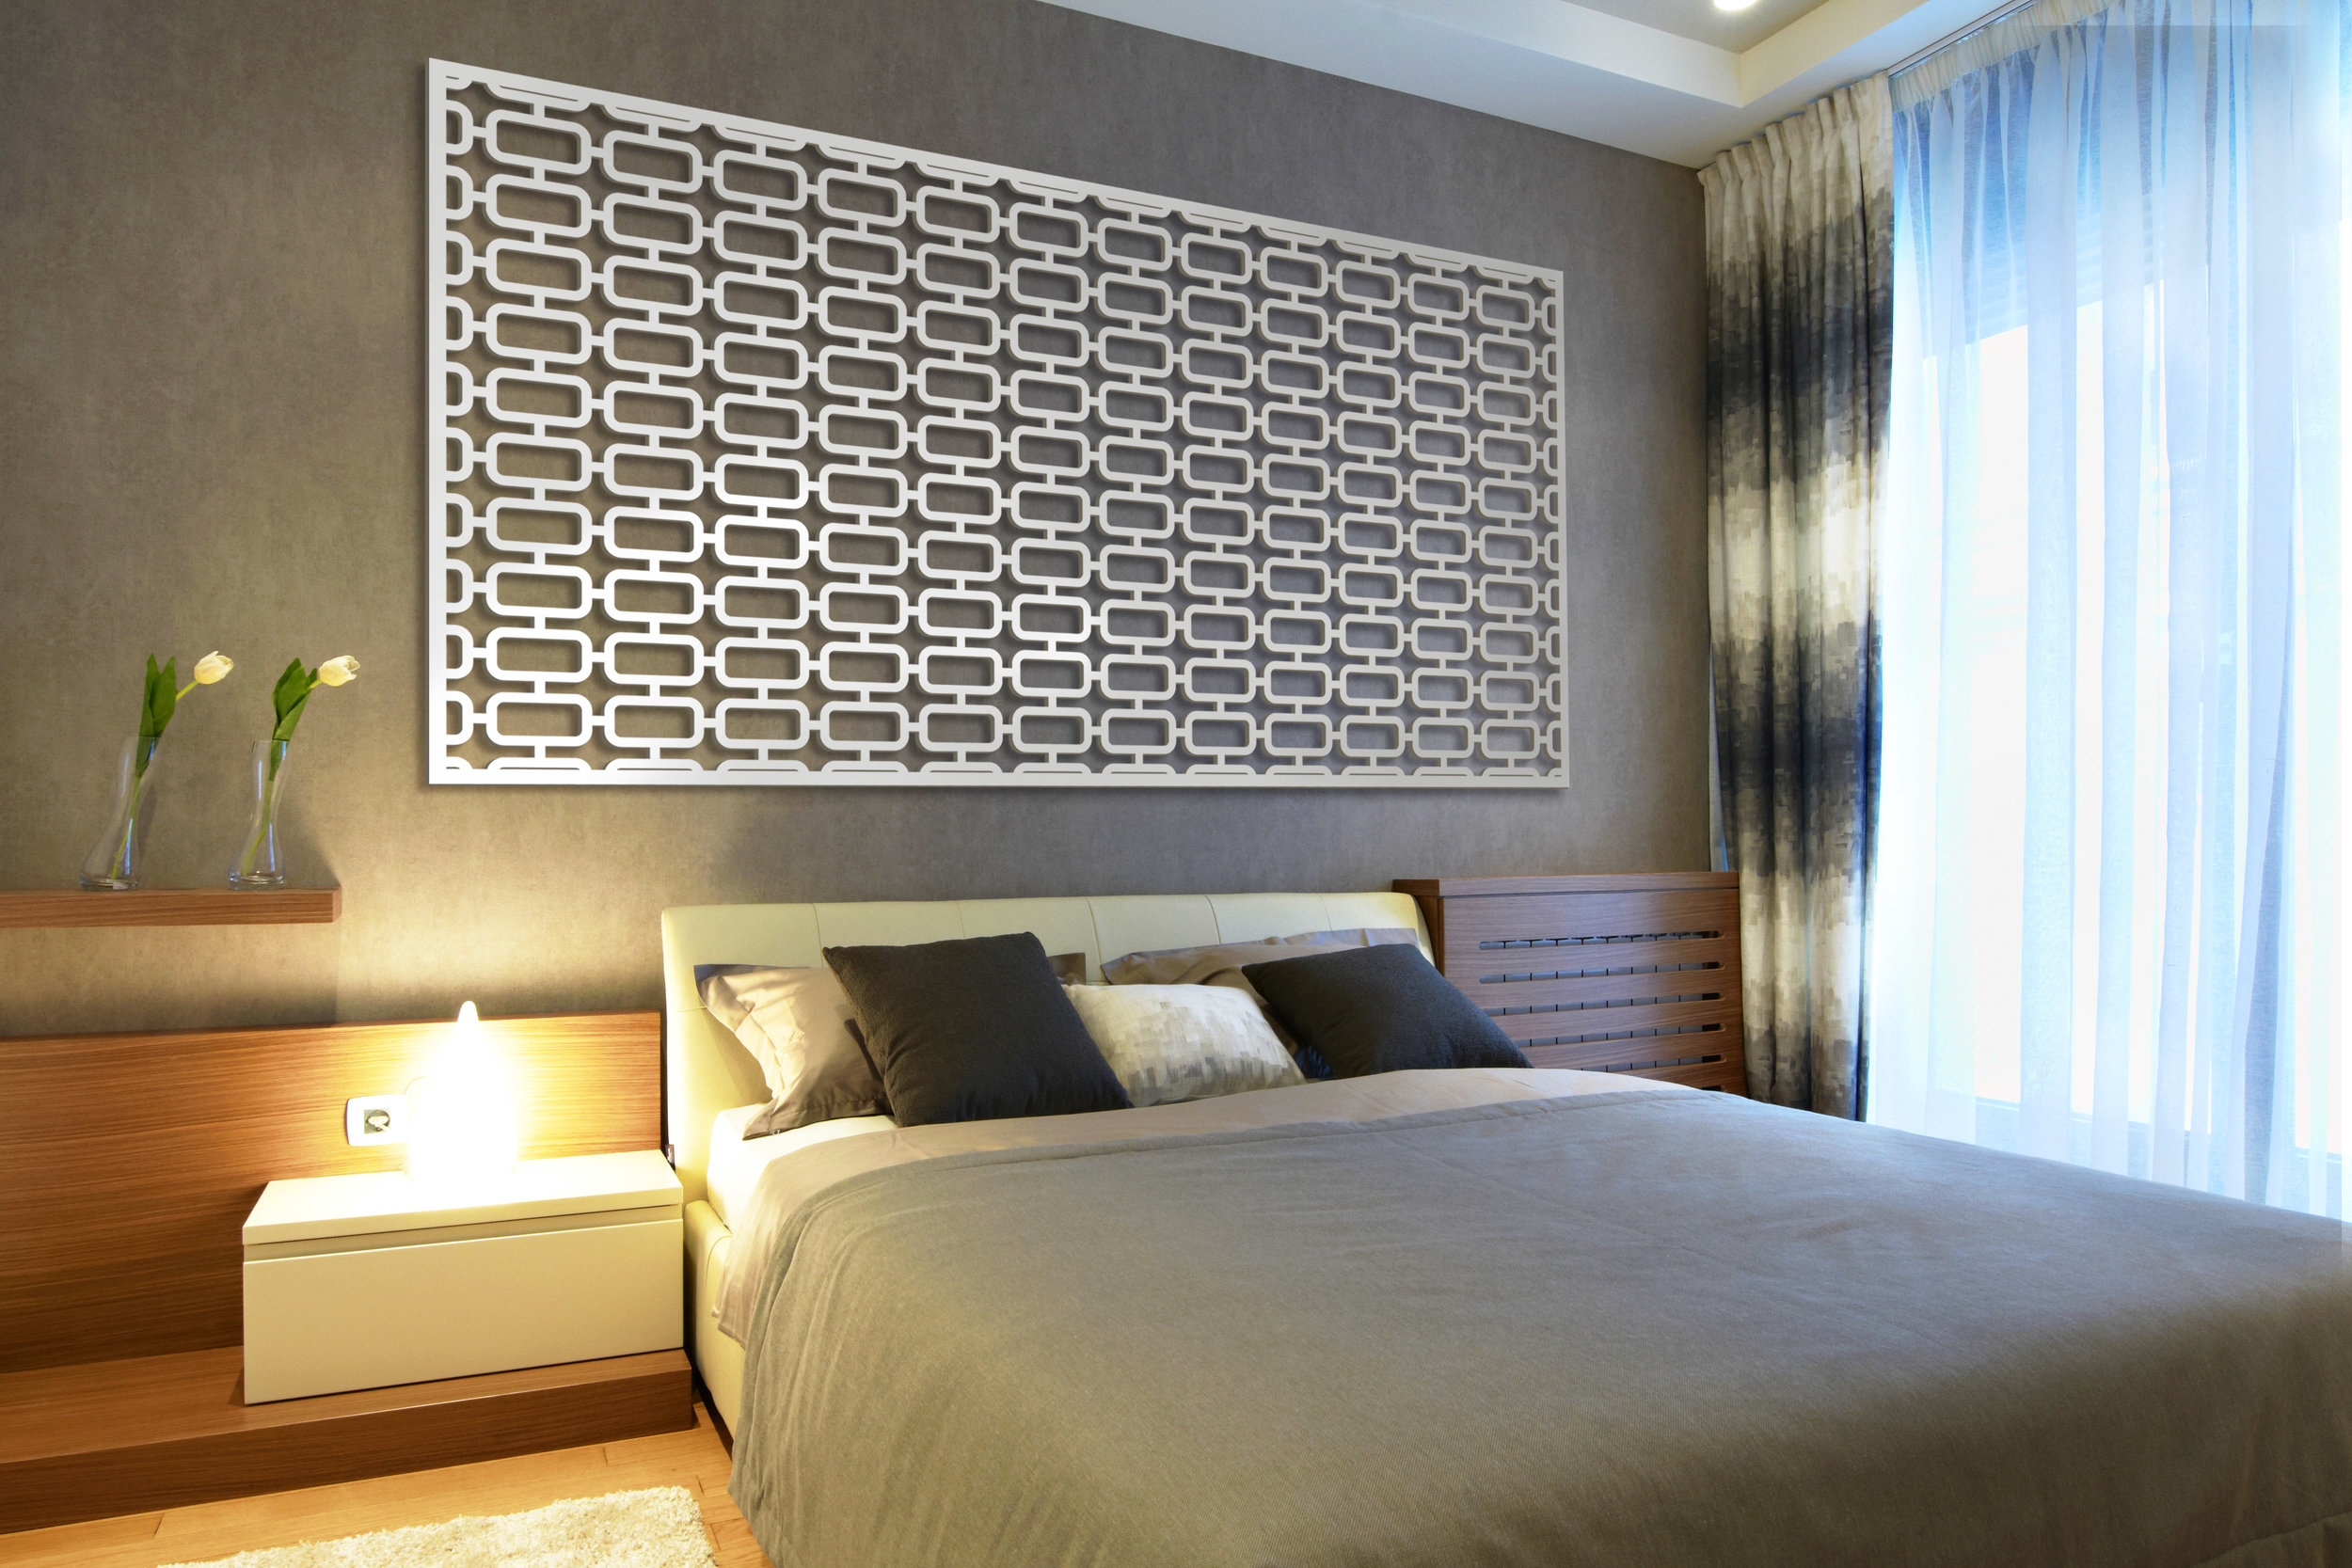 Installation Rendering C   Mezzo Grille decorative hotel wall panel - painted